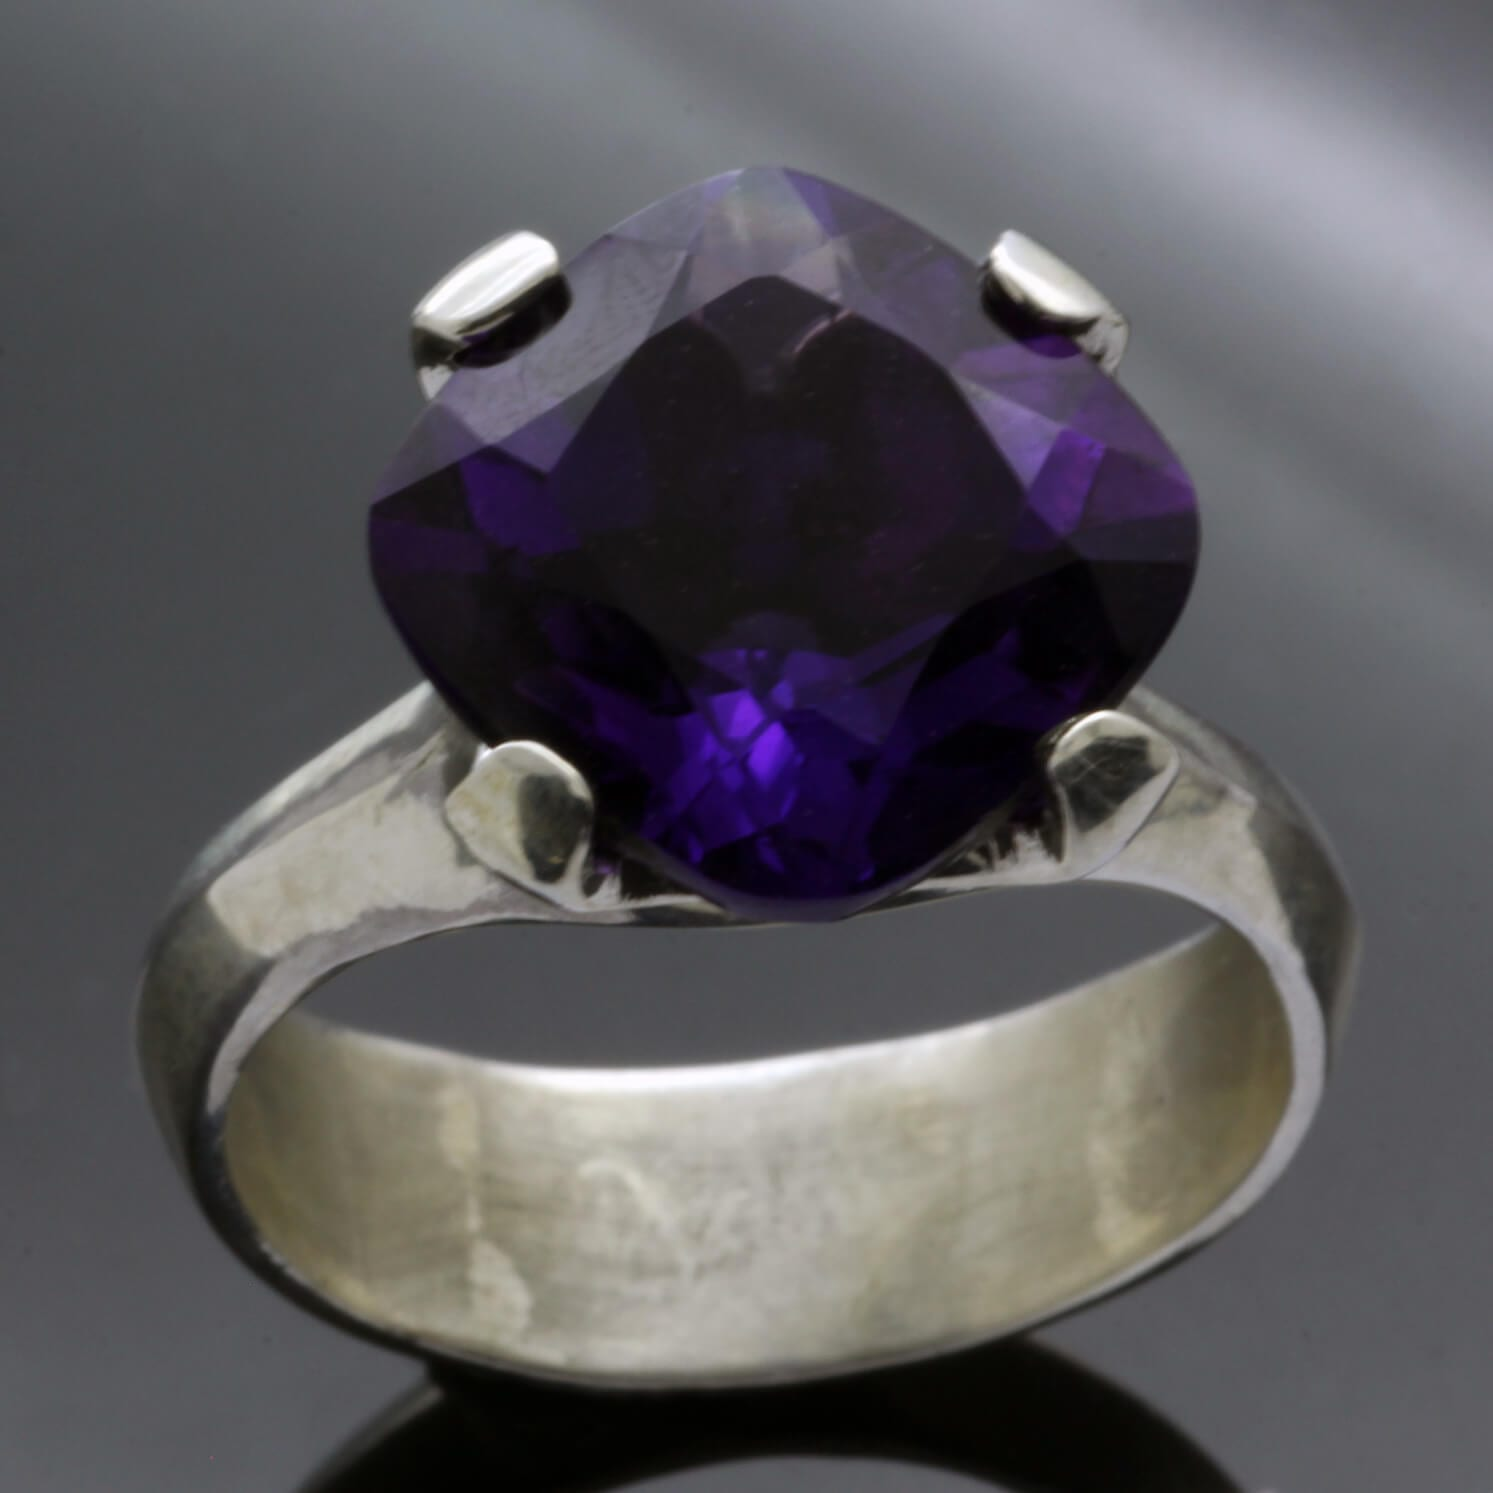 Contemporary Statement gemstone ring with Cushion cut Amethyst